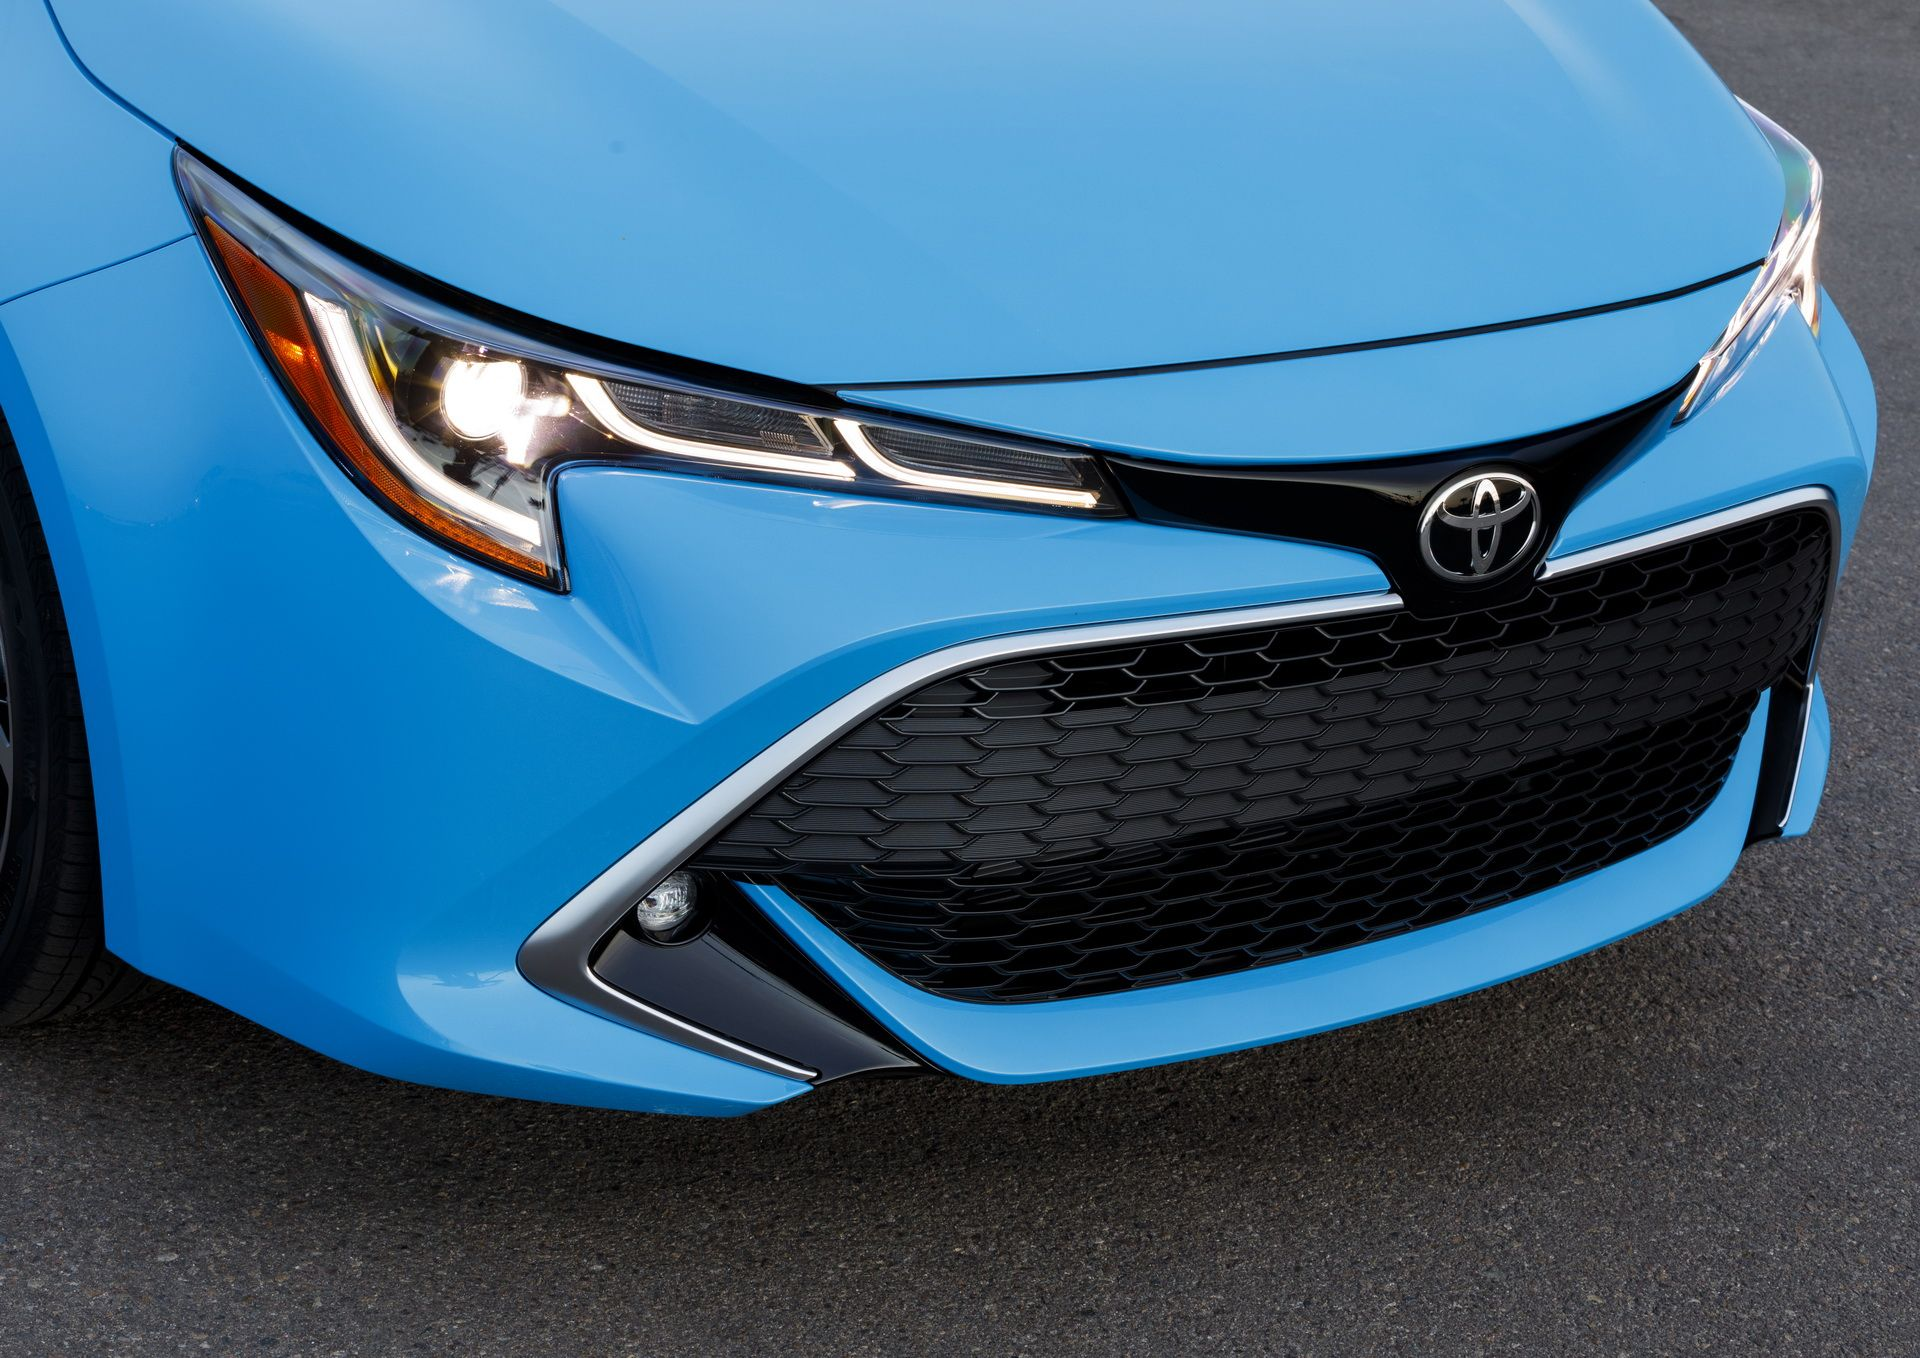 2019 Toyota Corolla Hatch Specs Announced, Reviews Are ...